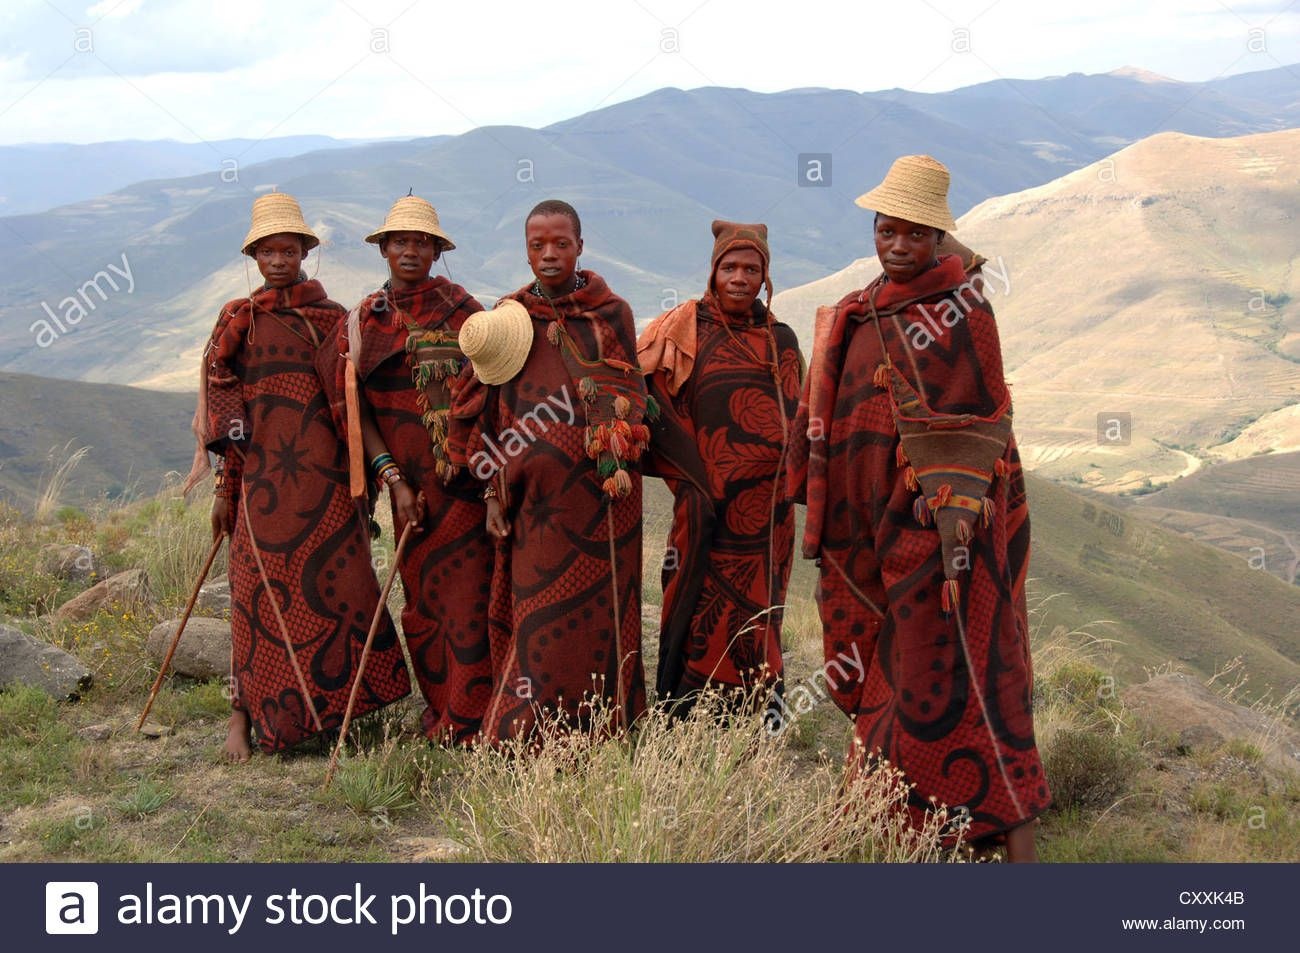 Group Of Young Basotho Men Wearing Traditional Basotho Blankets In Stock Photo Royalty Free Image 50987563 Alamy Basotho Photo Grouping Fantasy Clothing